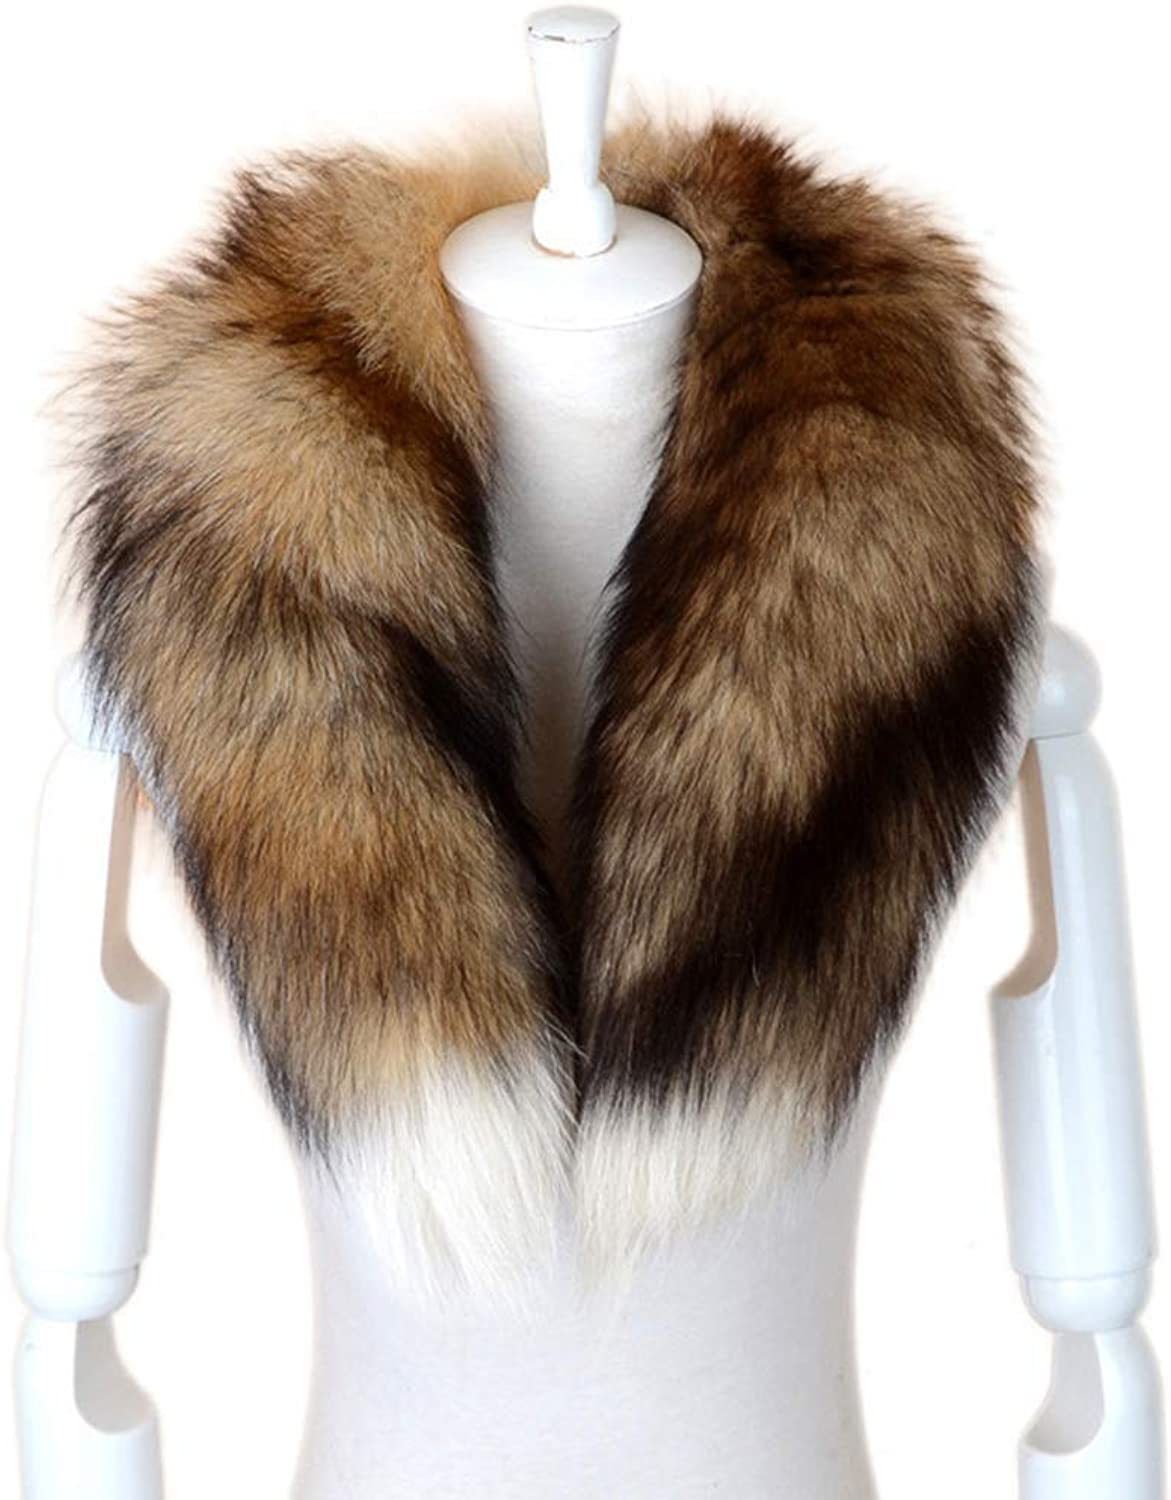 Lafee Bridal Women's Faux Fox Fur Neck Scarf Wrap Shawl Warm Winter Coat Coller Shurg